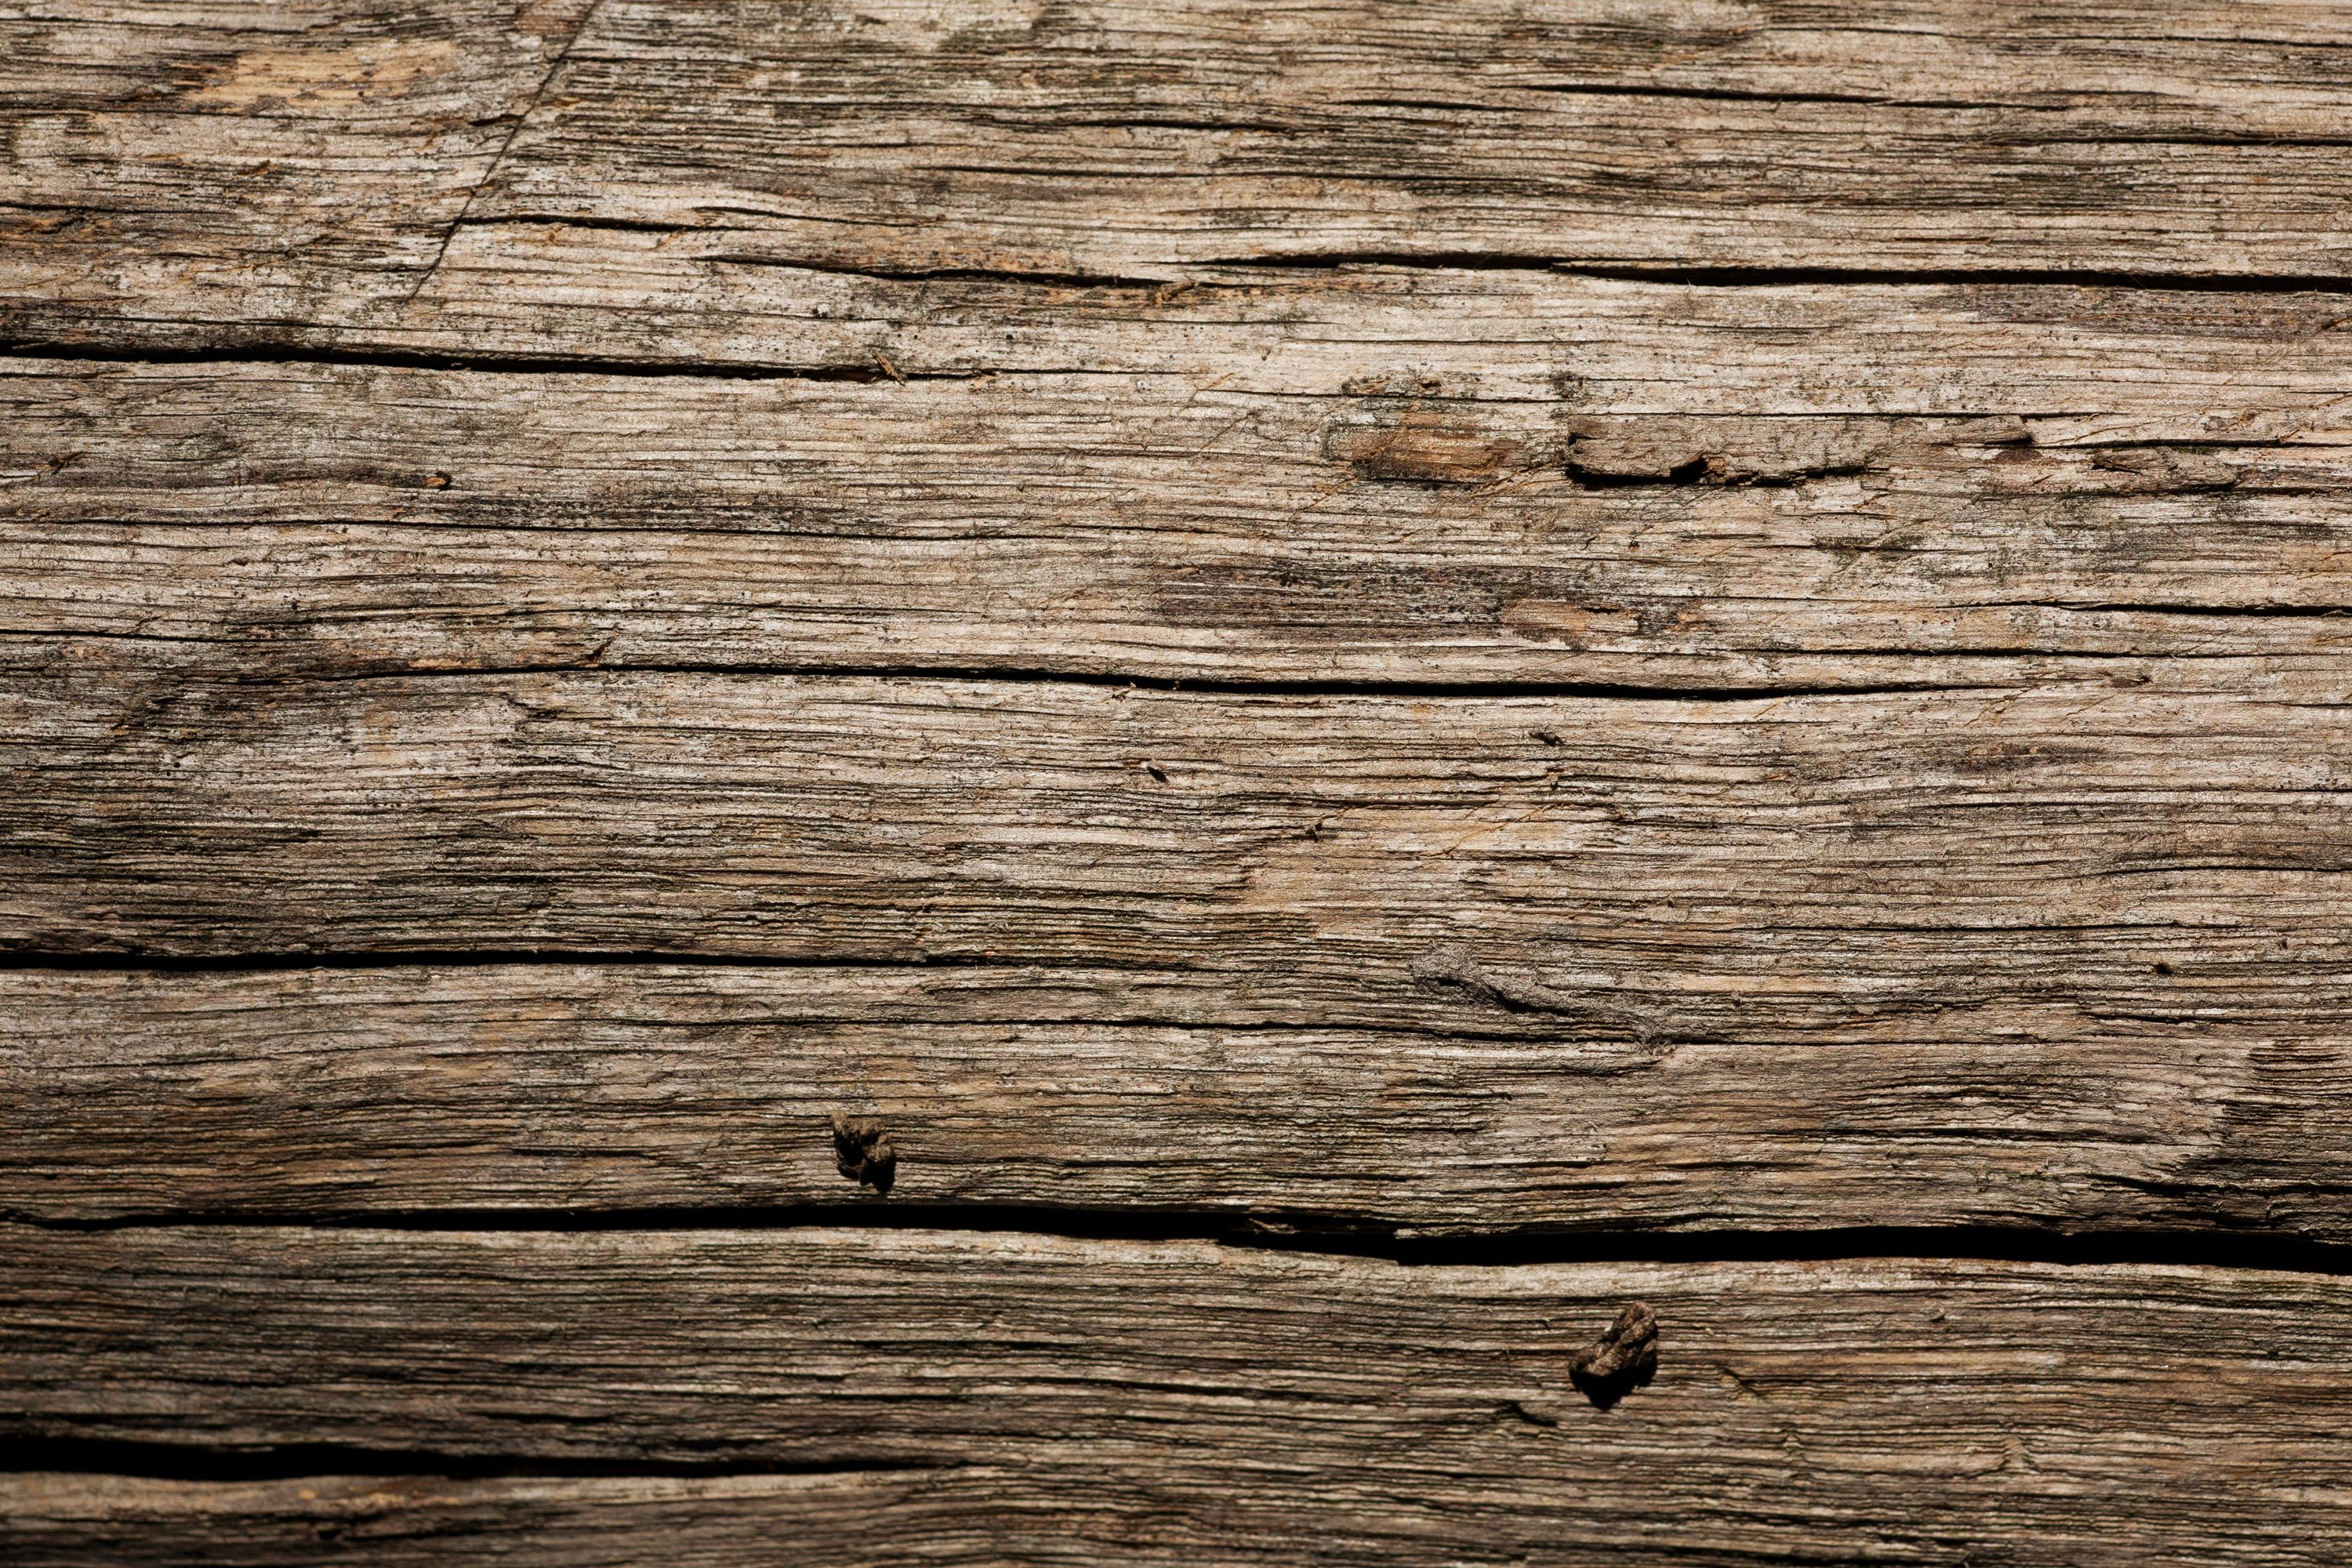 Old Wooden Boards Texture Background Wood Wall Texture Pinterest Textured Background